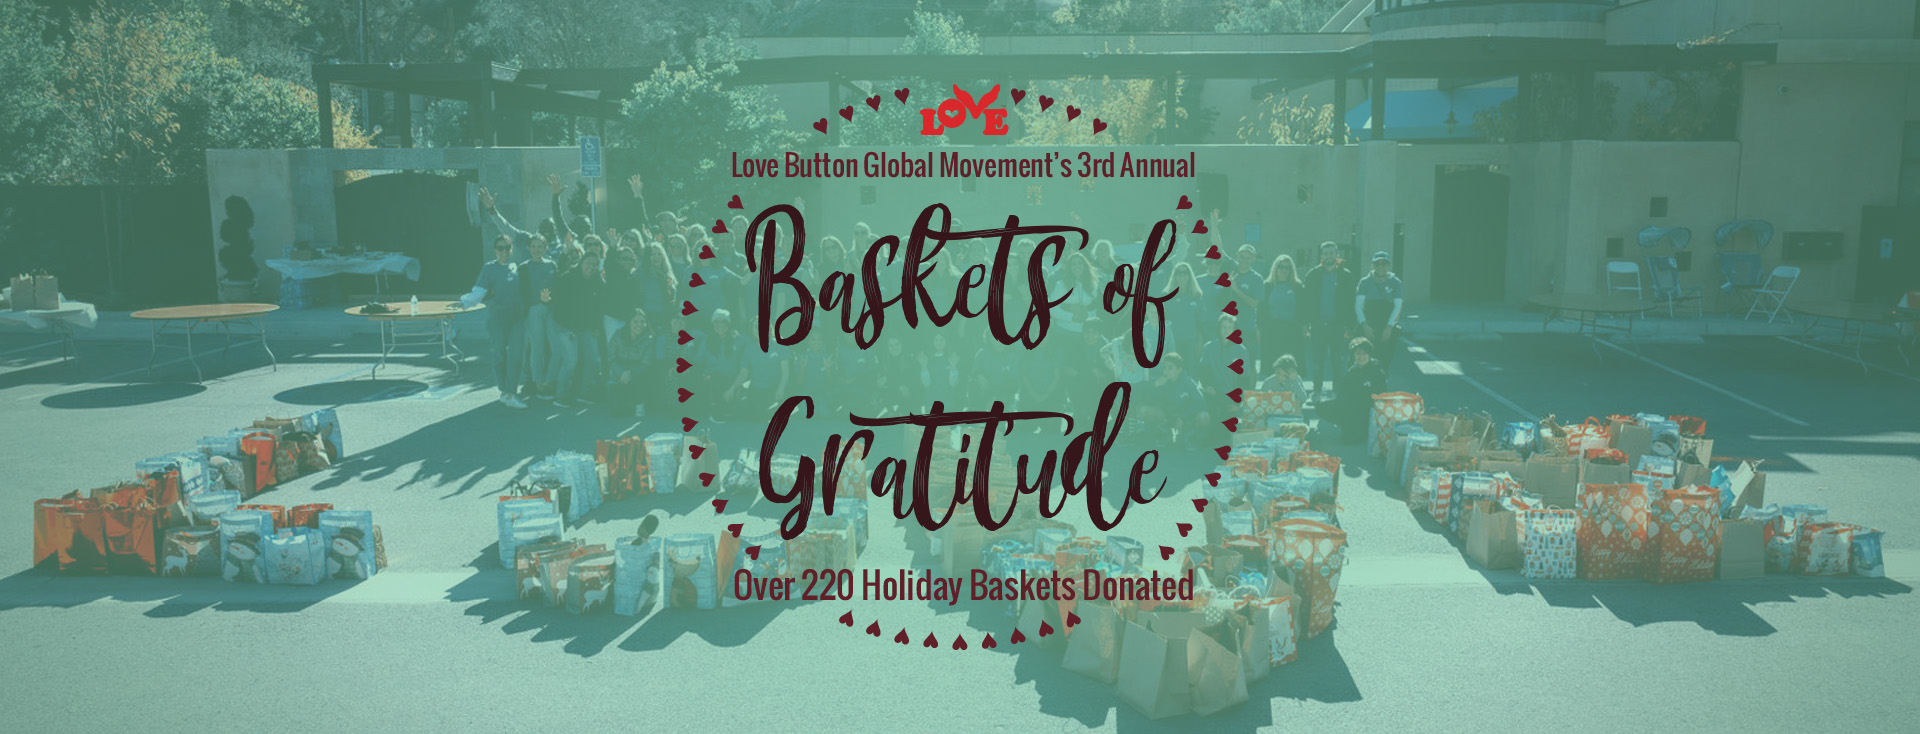 3rd Annual Baskets of Gratitude Recap